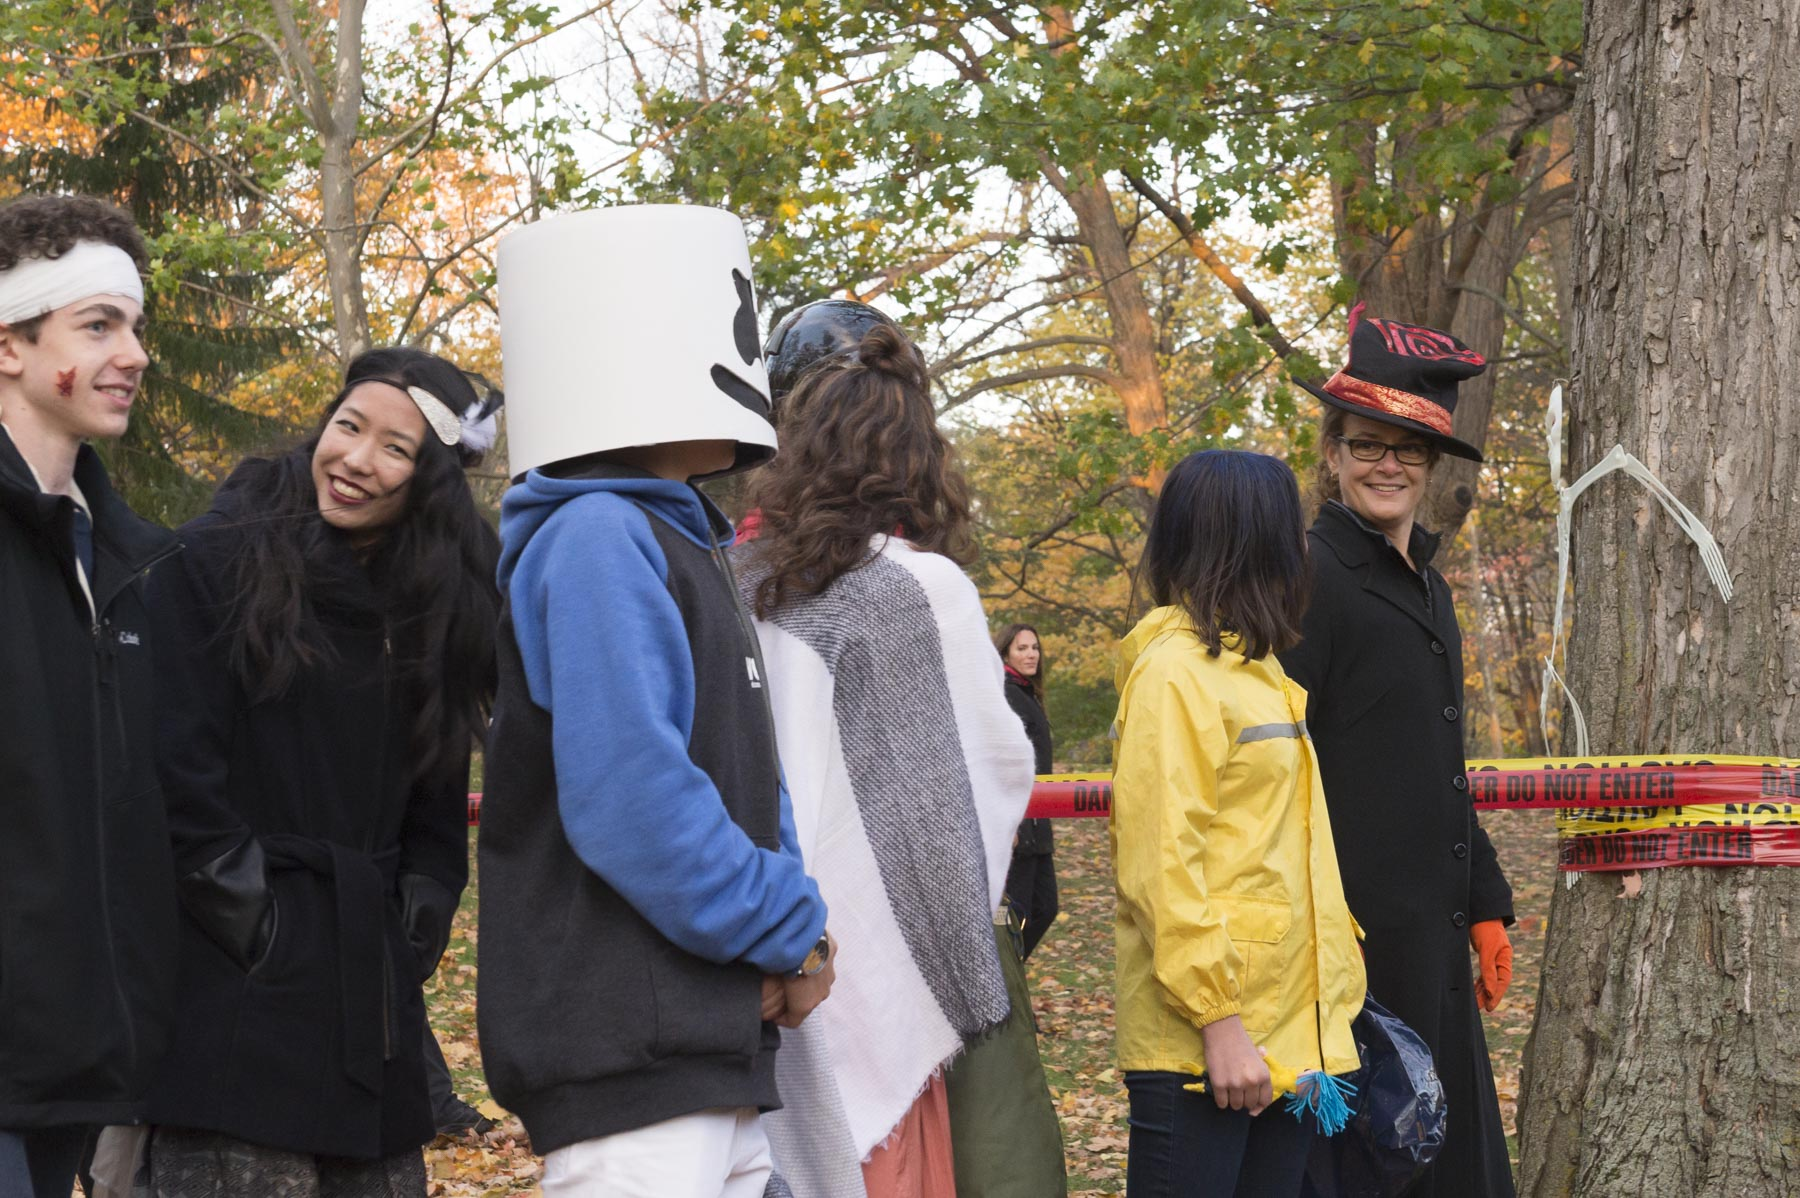 Governor General Julie Payette, disguised with a black cape and a colourful Cirque du Soleil top hat, took part in the event and walked the scary path.